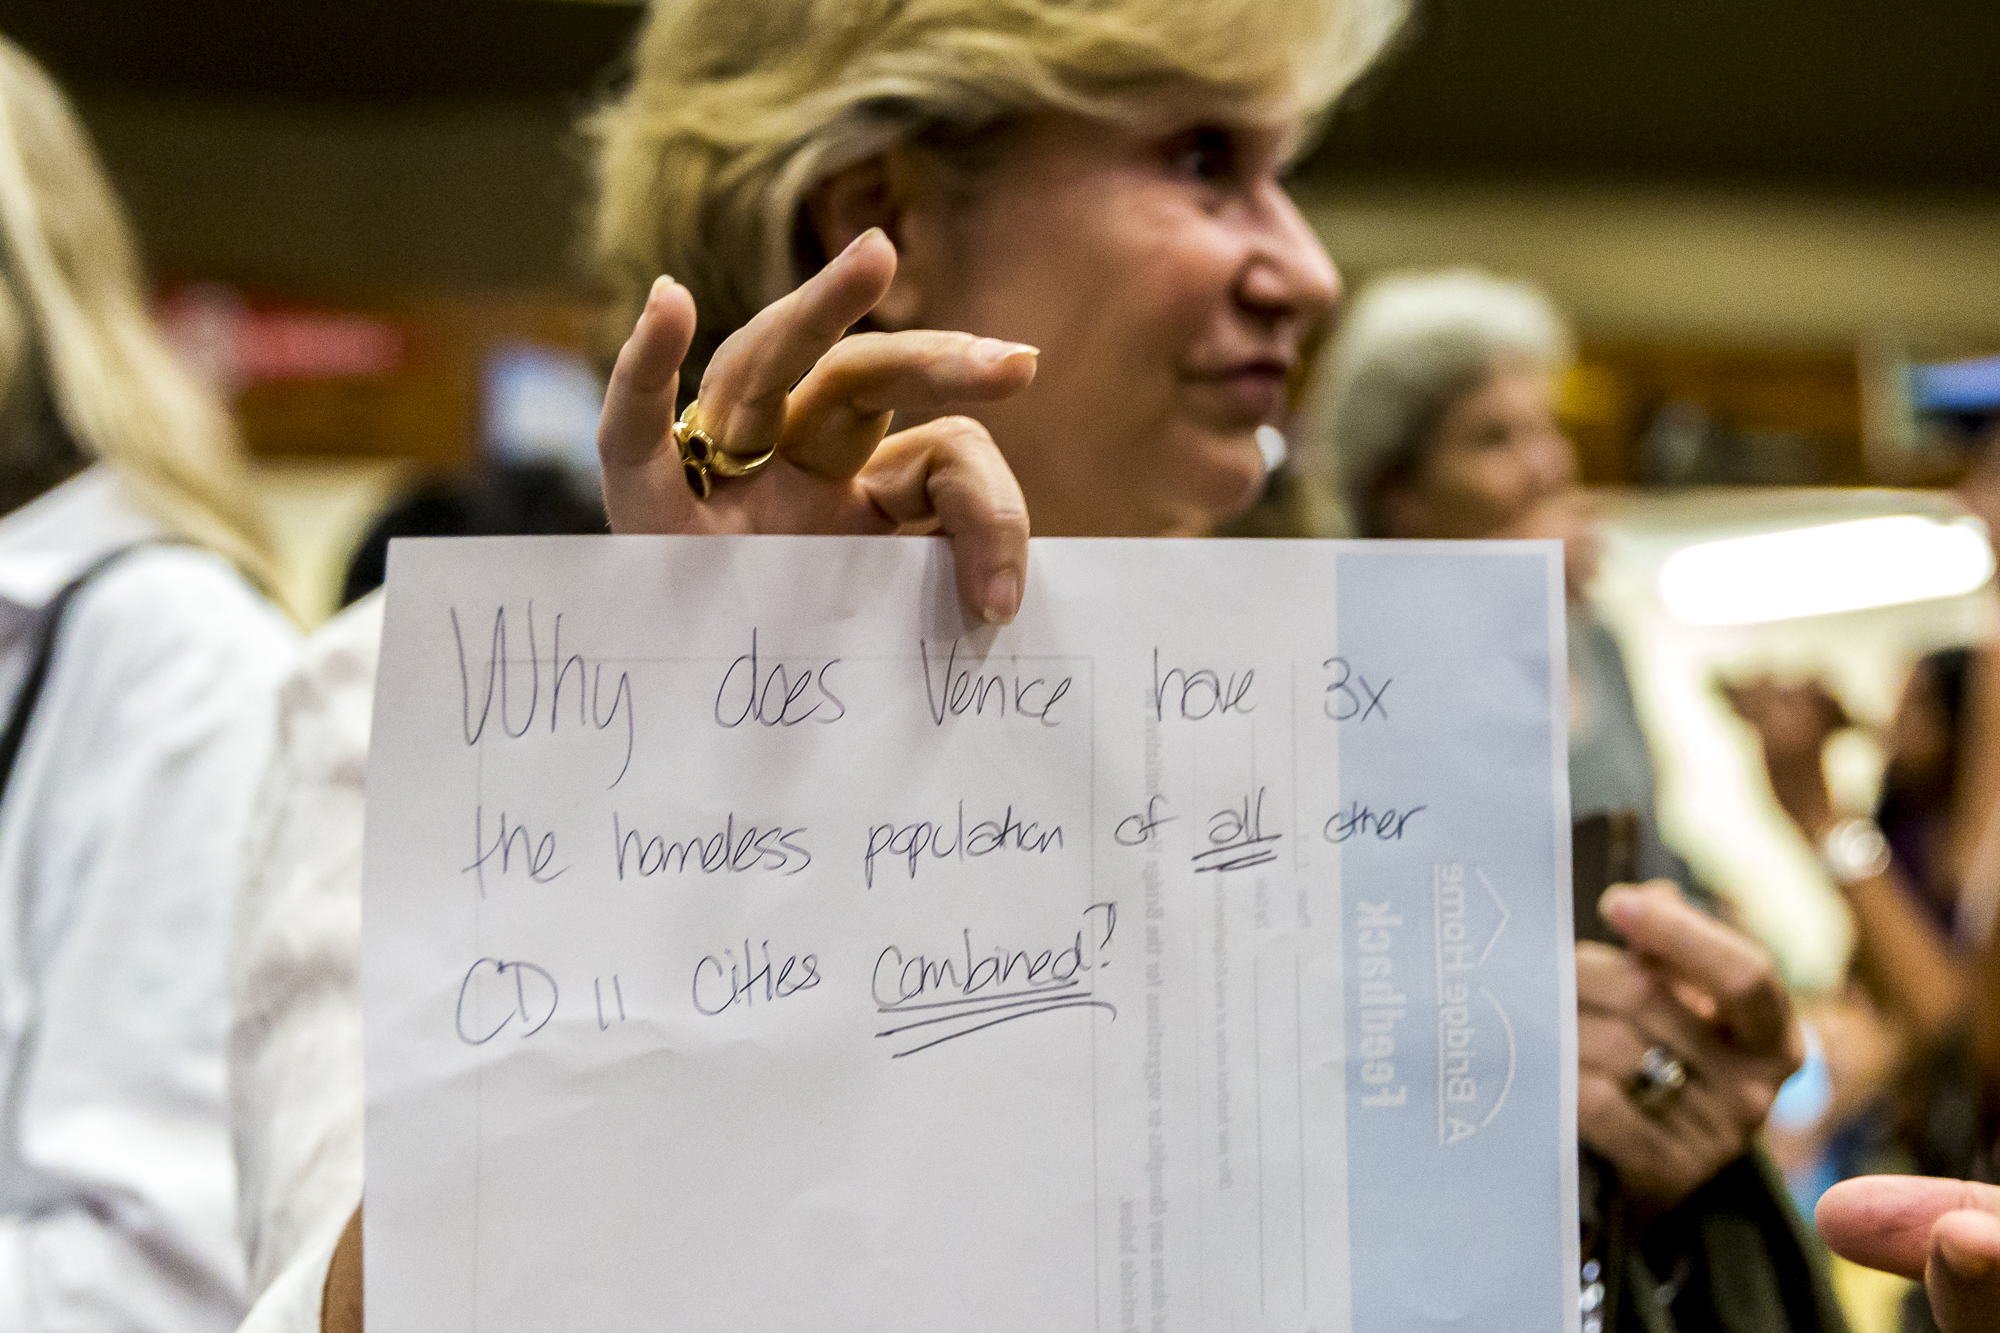 "Angelica Strong holds a piece of paper that asks, ""Why does Venice have 3x the homeless population than of all other CD II cities combined"" during the town hall discussing the building of a new homeless shelter in Venice that took place at Westminster Elementary School, in Venice, Calif on Wednesday, June 13 2018. (Photo by: Matthew Martin)"